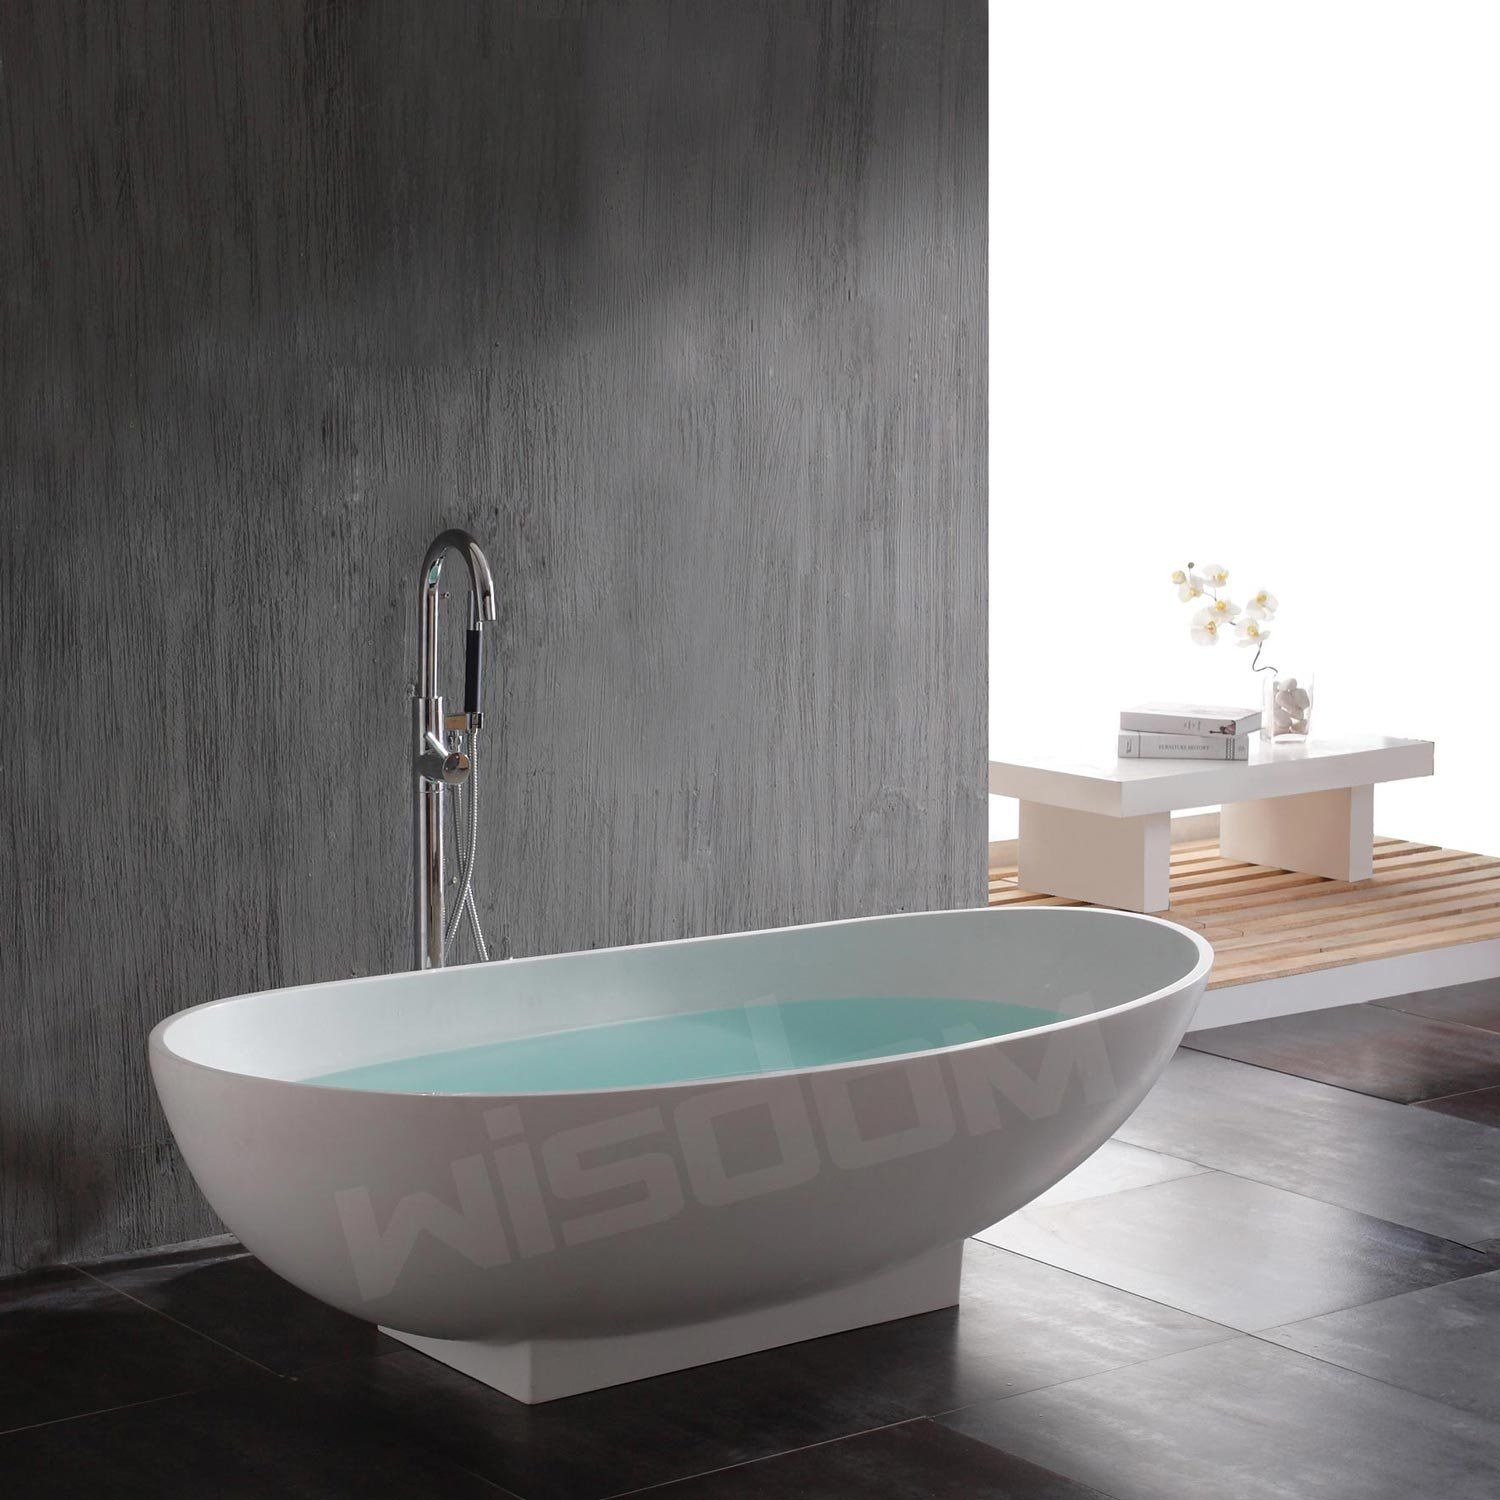 Beautiful Freestanding Tubs For Modern Bathroom Design: Awesome ...